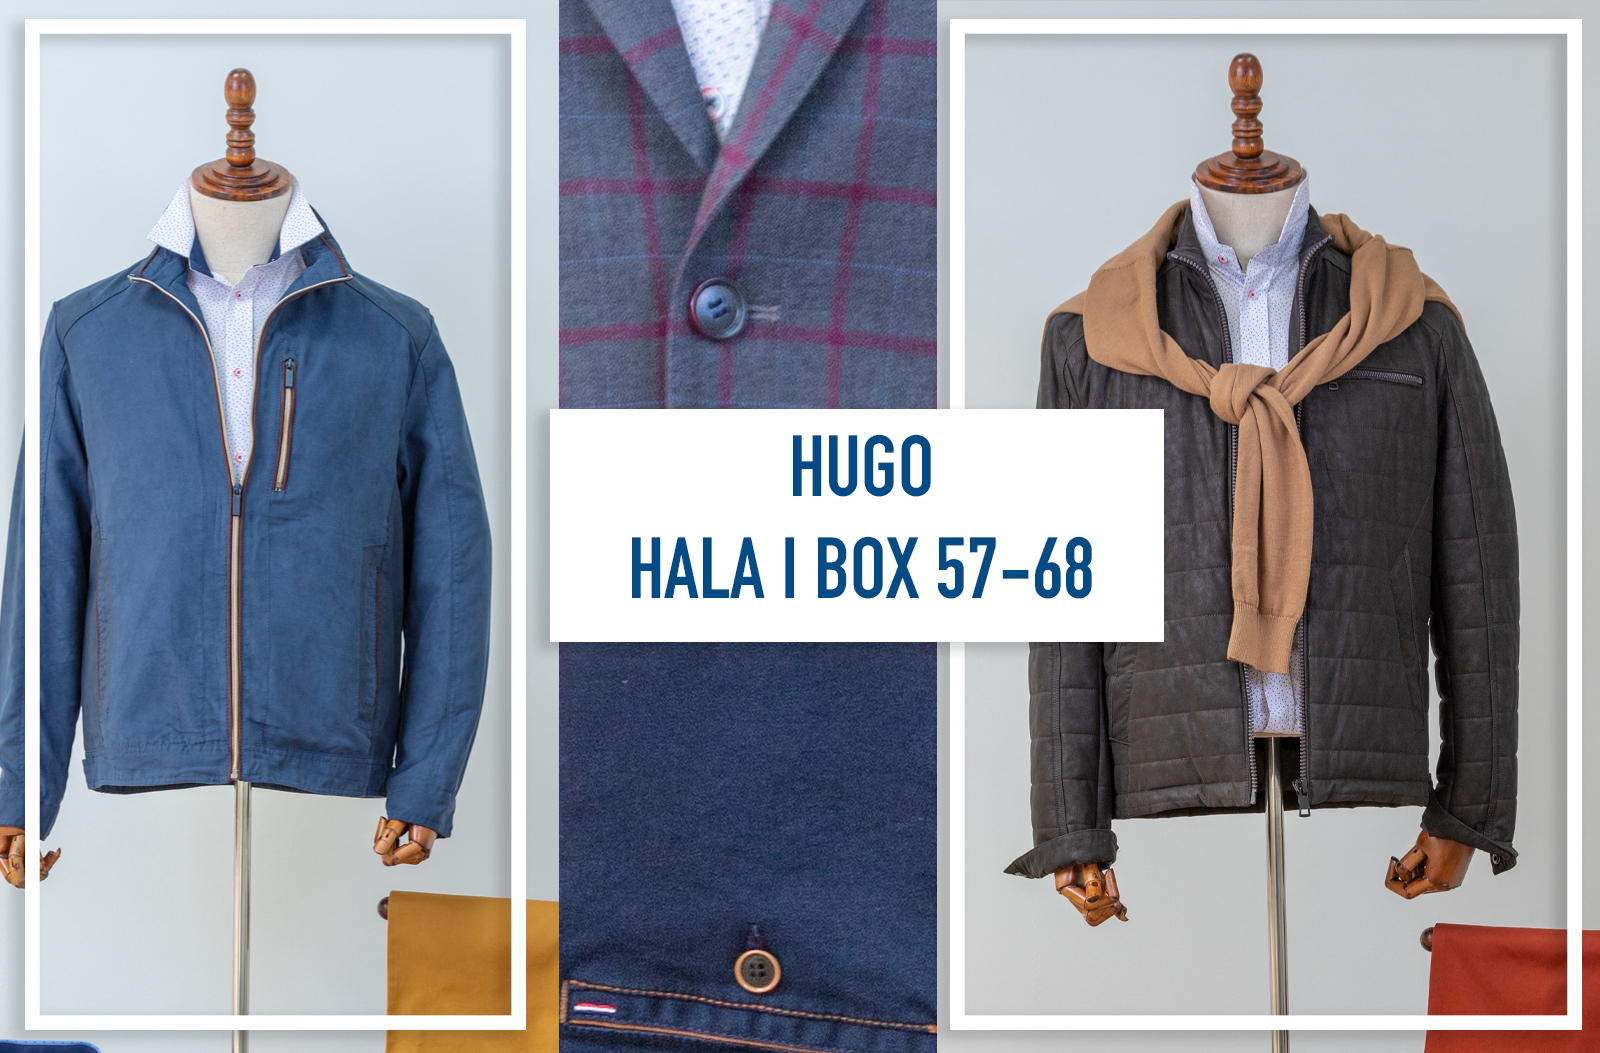 Hala 1 box 57,68, 222 HUGO